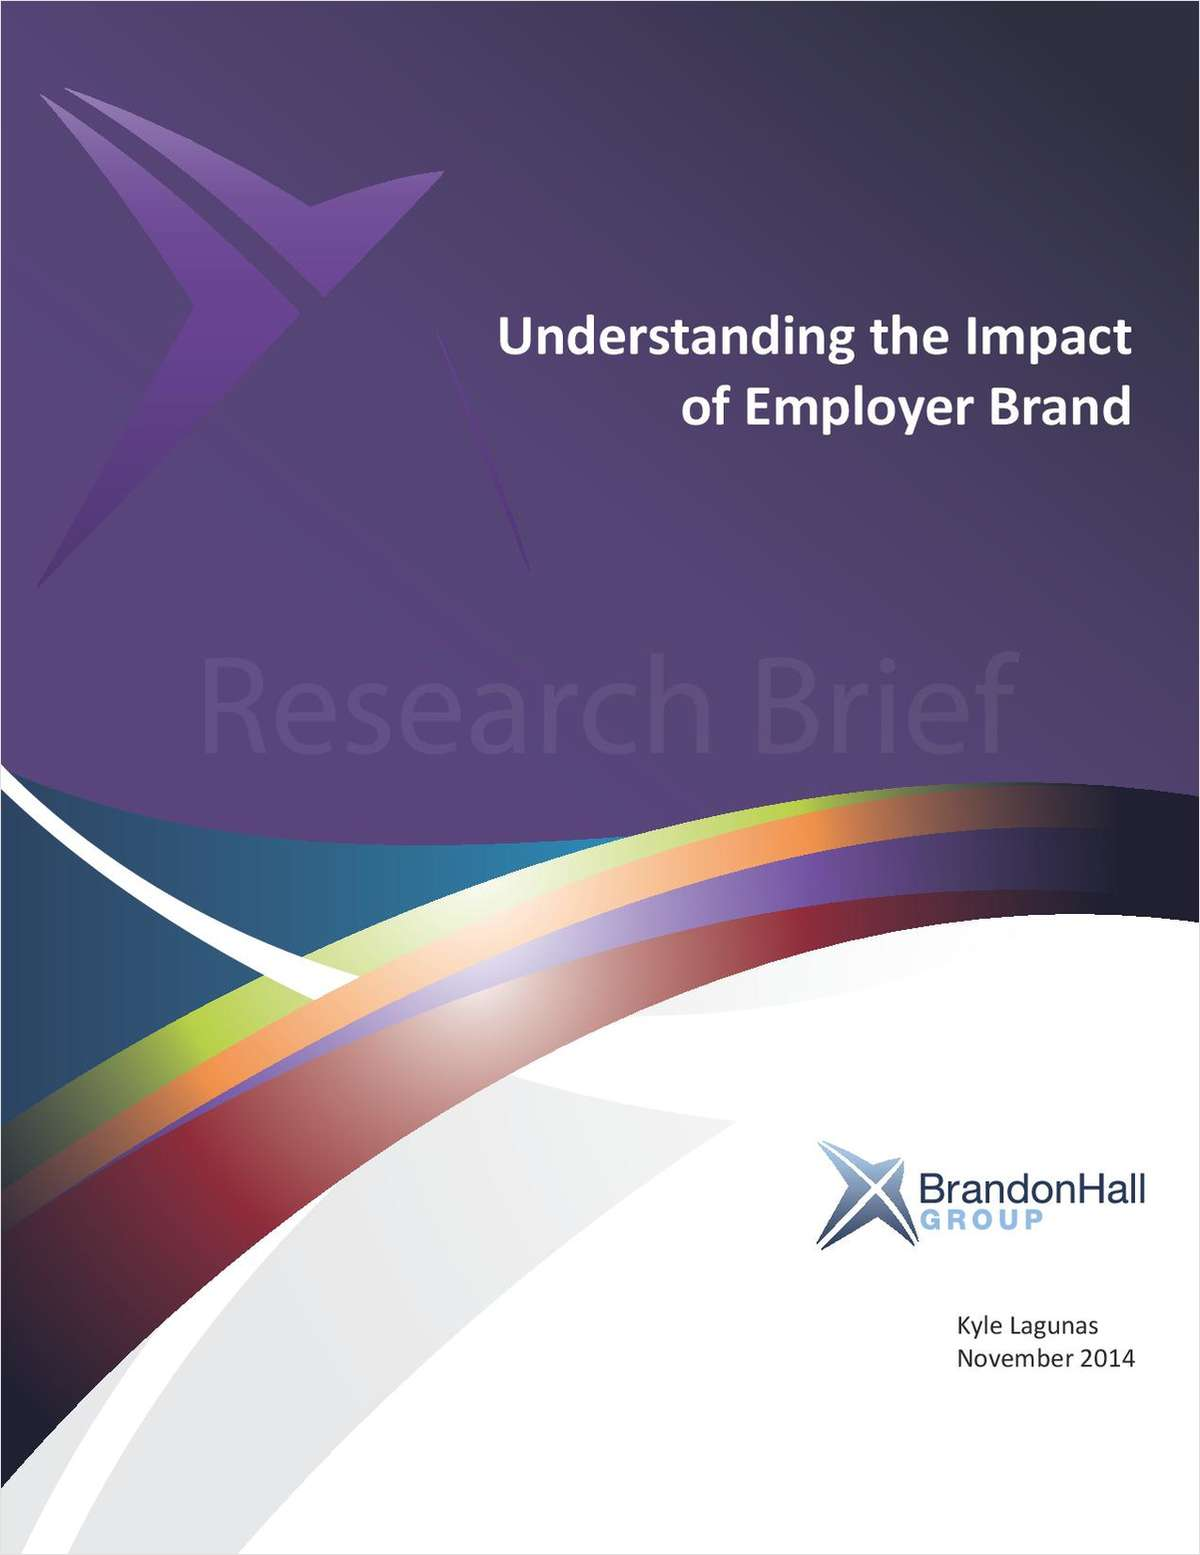 Understanding the Impact of your Employer Brand